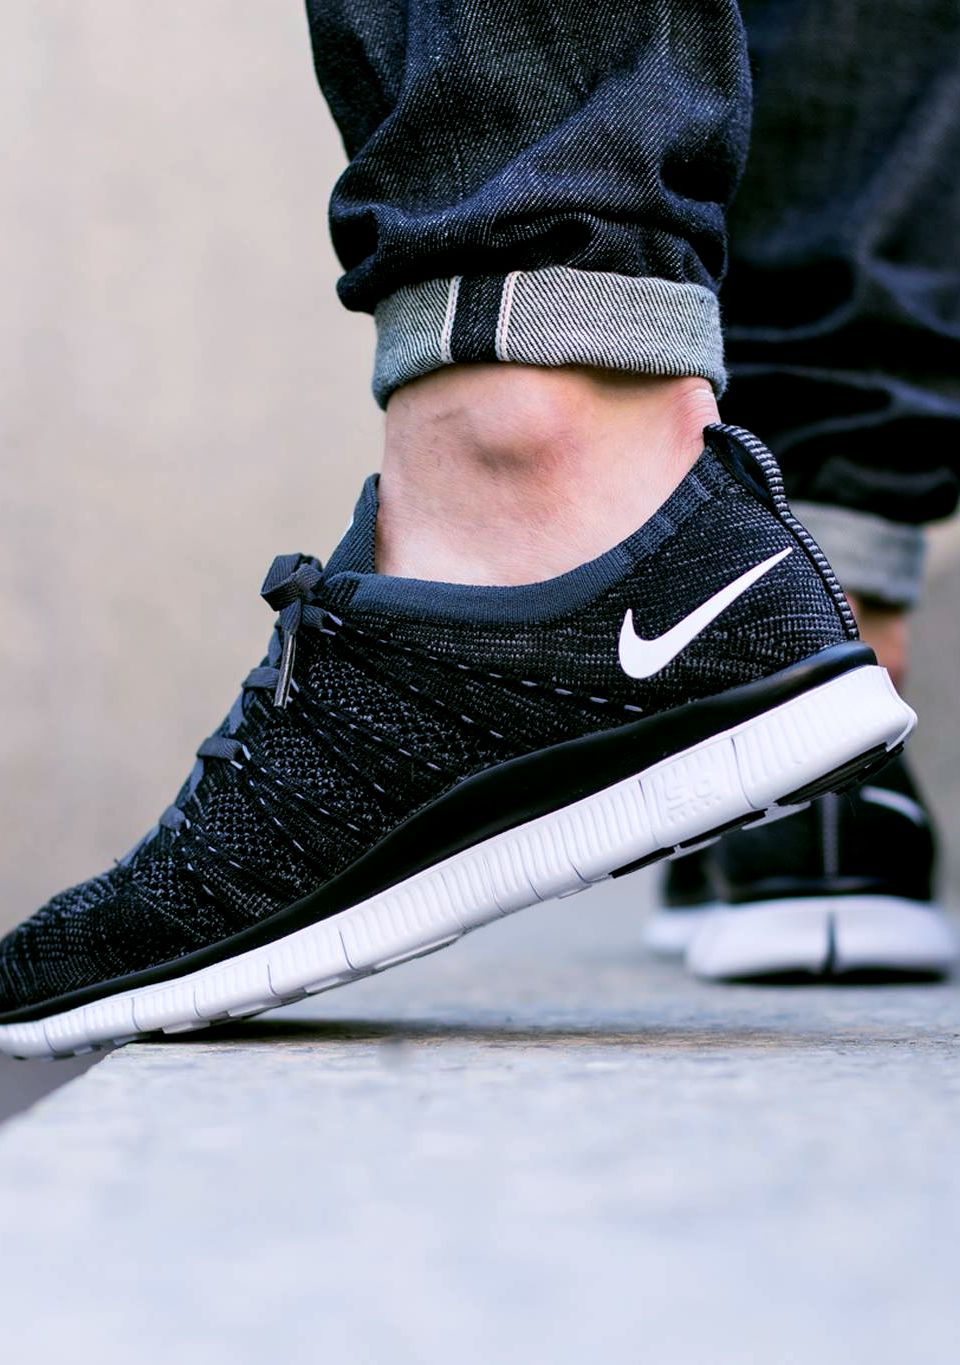 c5612bf8834 NIKE FREE FLYKNIT NSW (via Kicks-daily.com)